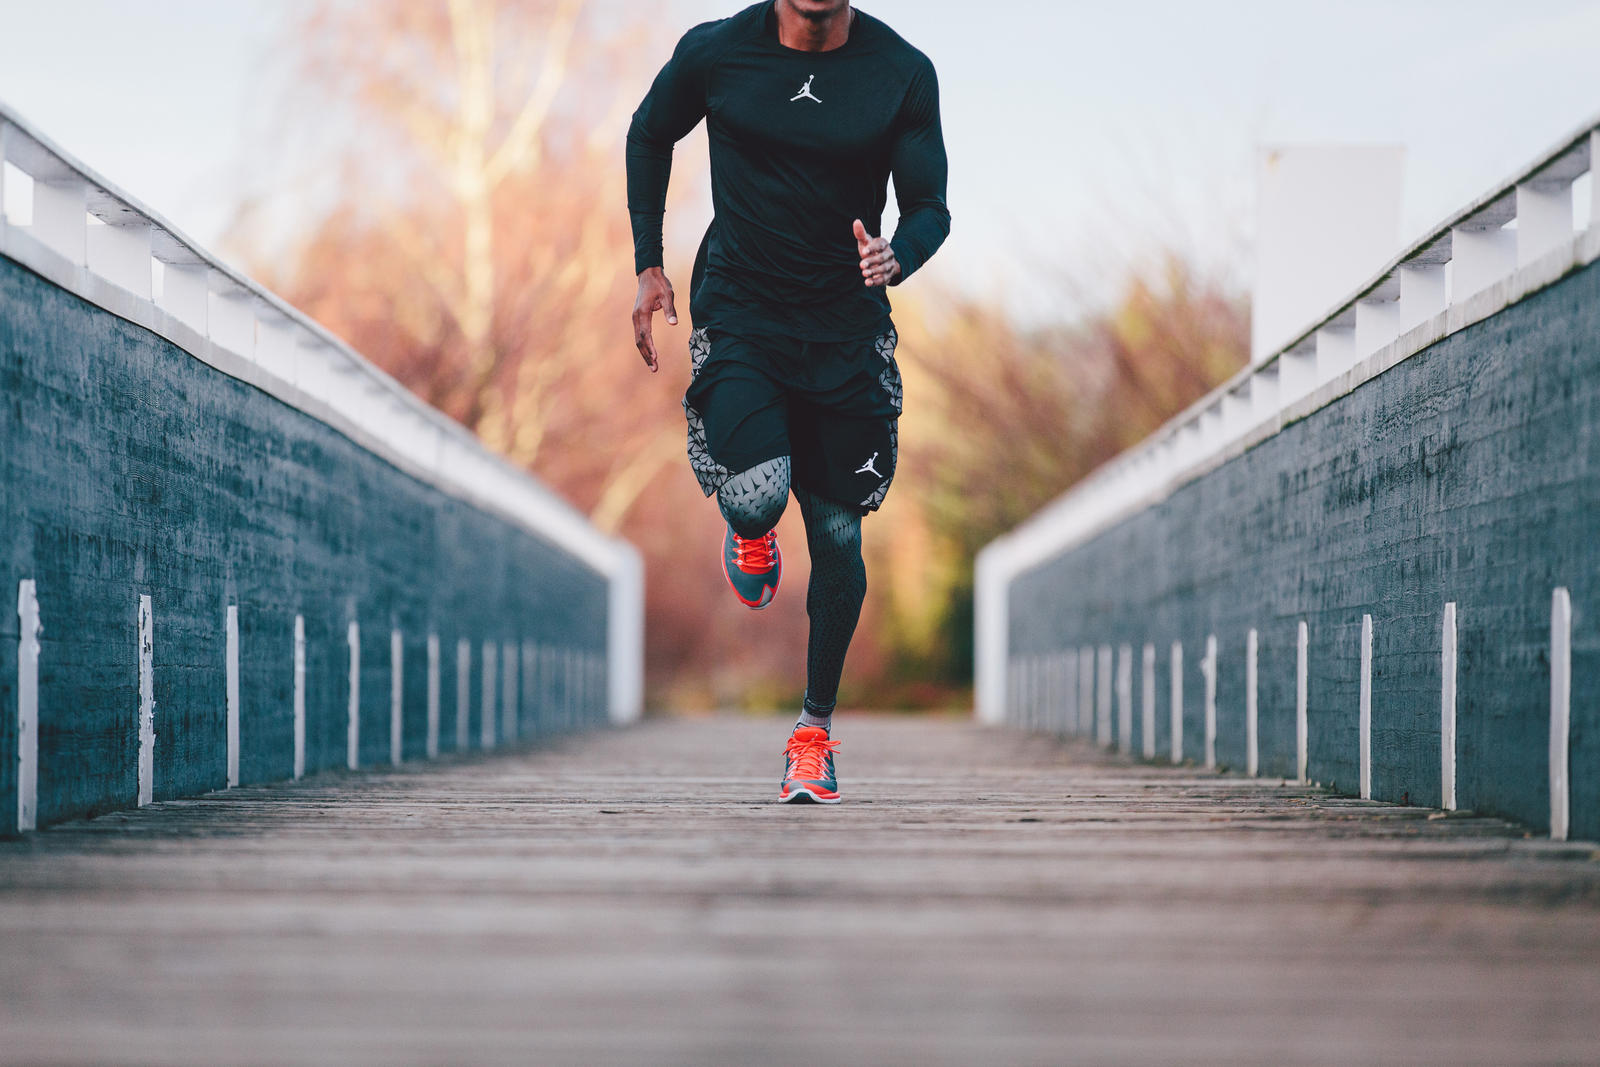 anaerobic capacity training for a 400m runner physical education essay Training for the 1600 improvements in anaerobic capacity and speed are limited and will affect mile / 1600m / 1500m 2015 physical education examination.